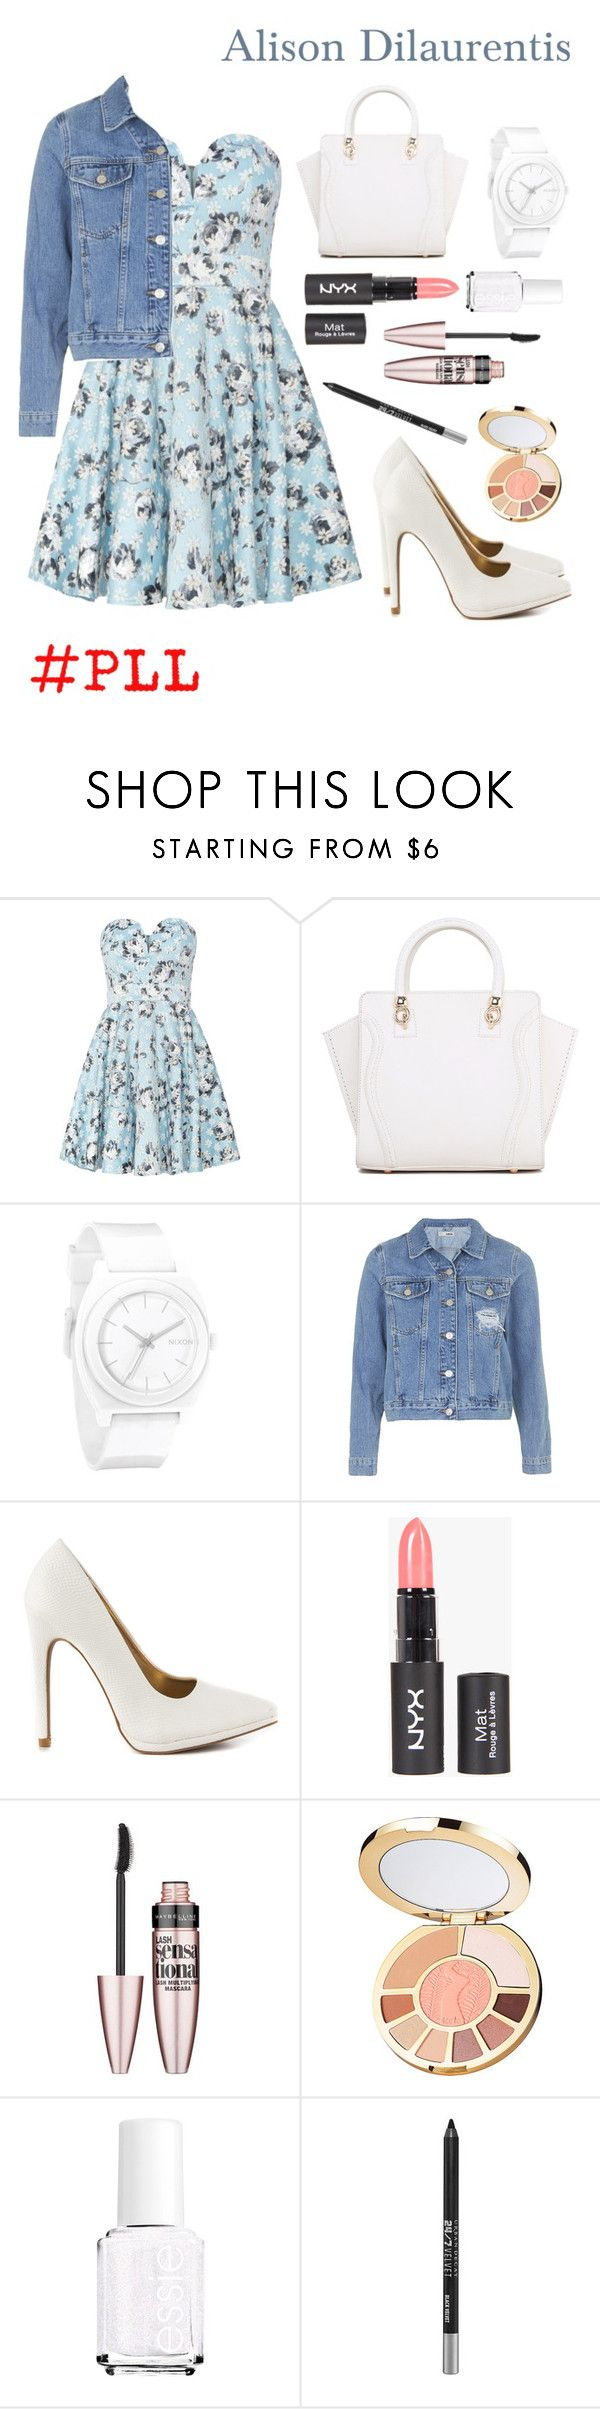 """""""Alison Dilaurentis"""" by horsecrazy33 ❤ liked on Polyvore featuring TFNC, Nixon, Topshop, Qupid, Maybelline, tarte, Essie, Urban Decay, PrettyLittleLiars and pll"""